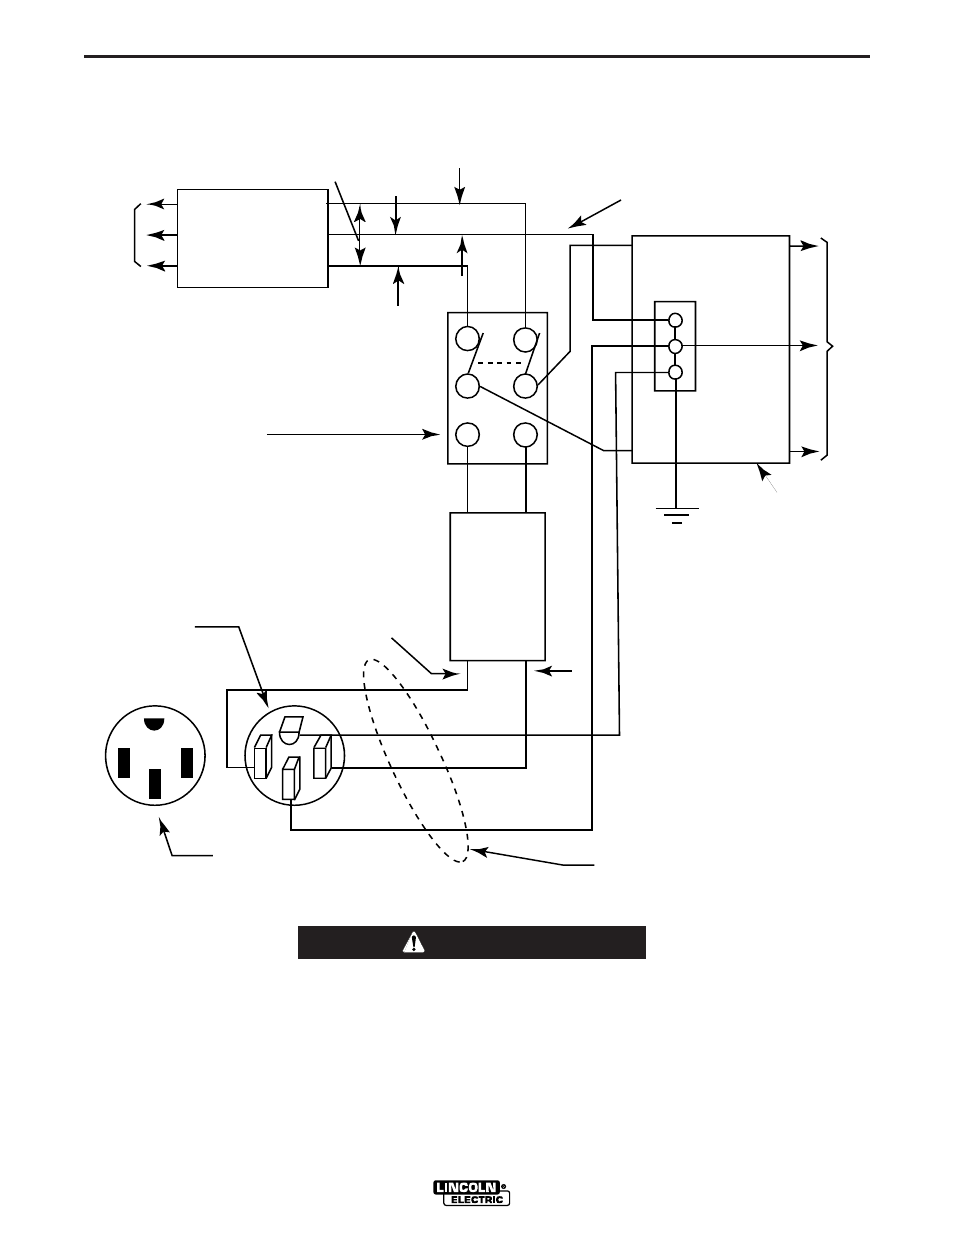 medium resolution of installation figure 1 warning lincoln electric im925 ranger 10 000 plus user manual page 16 37